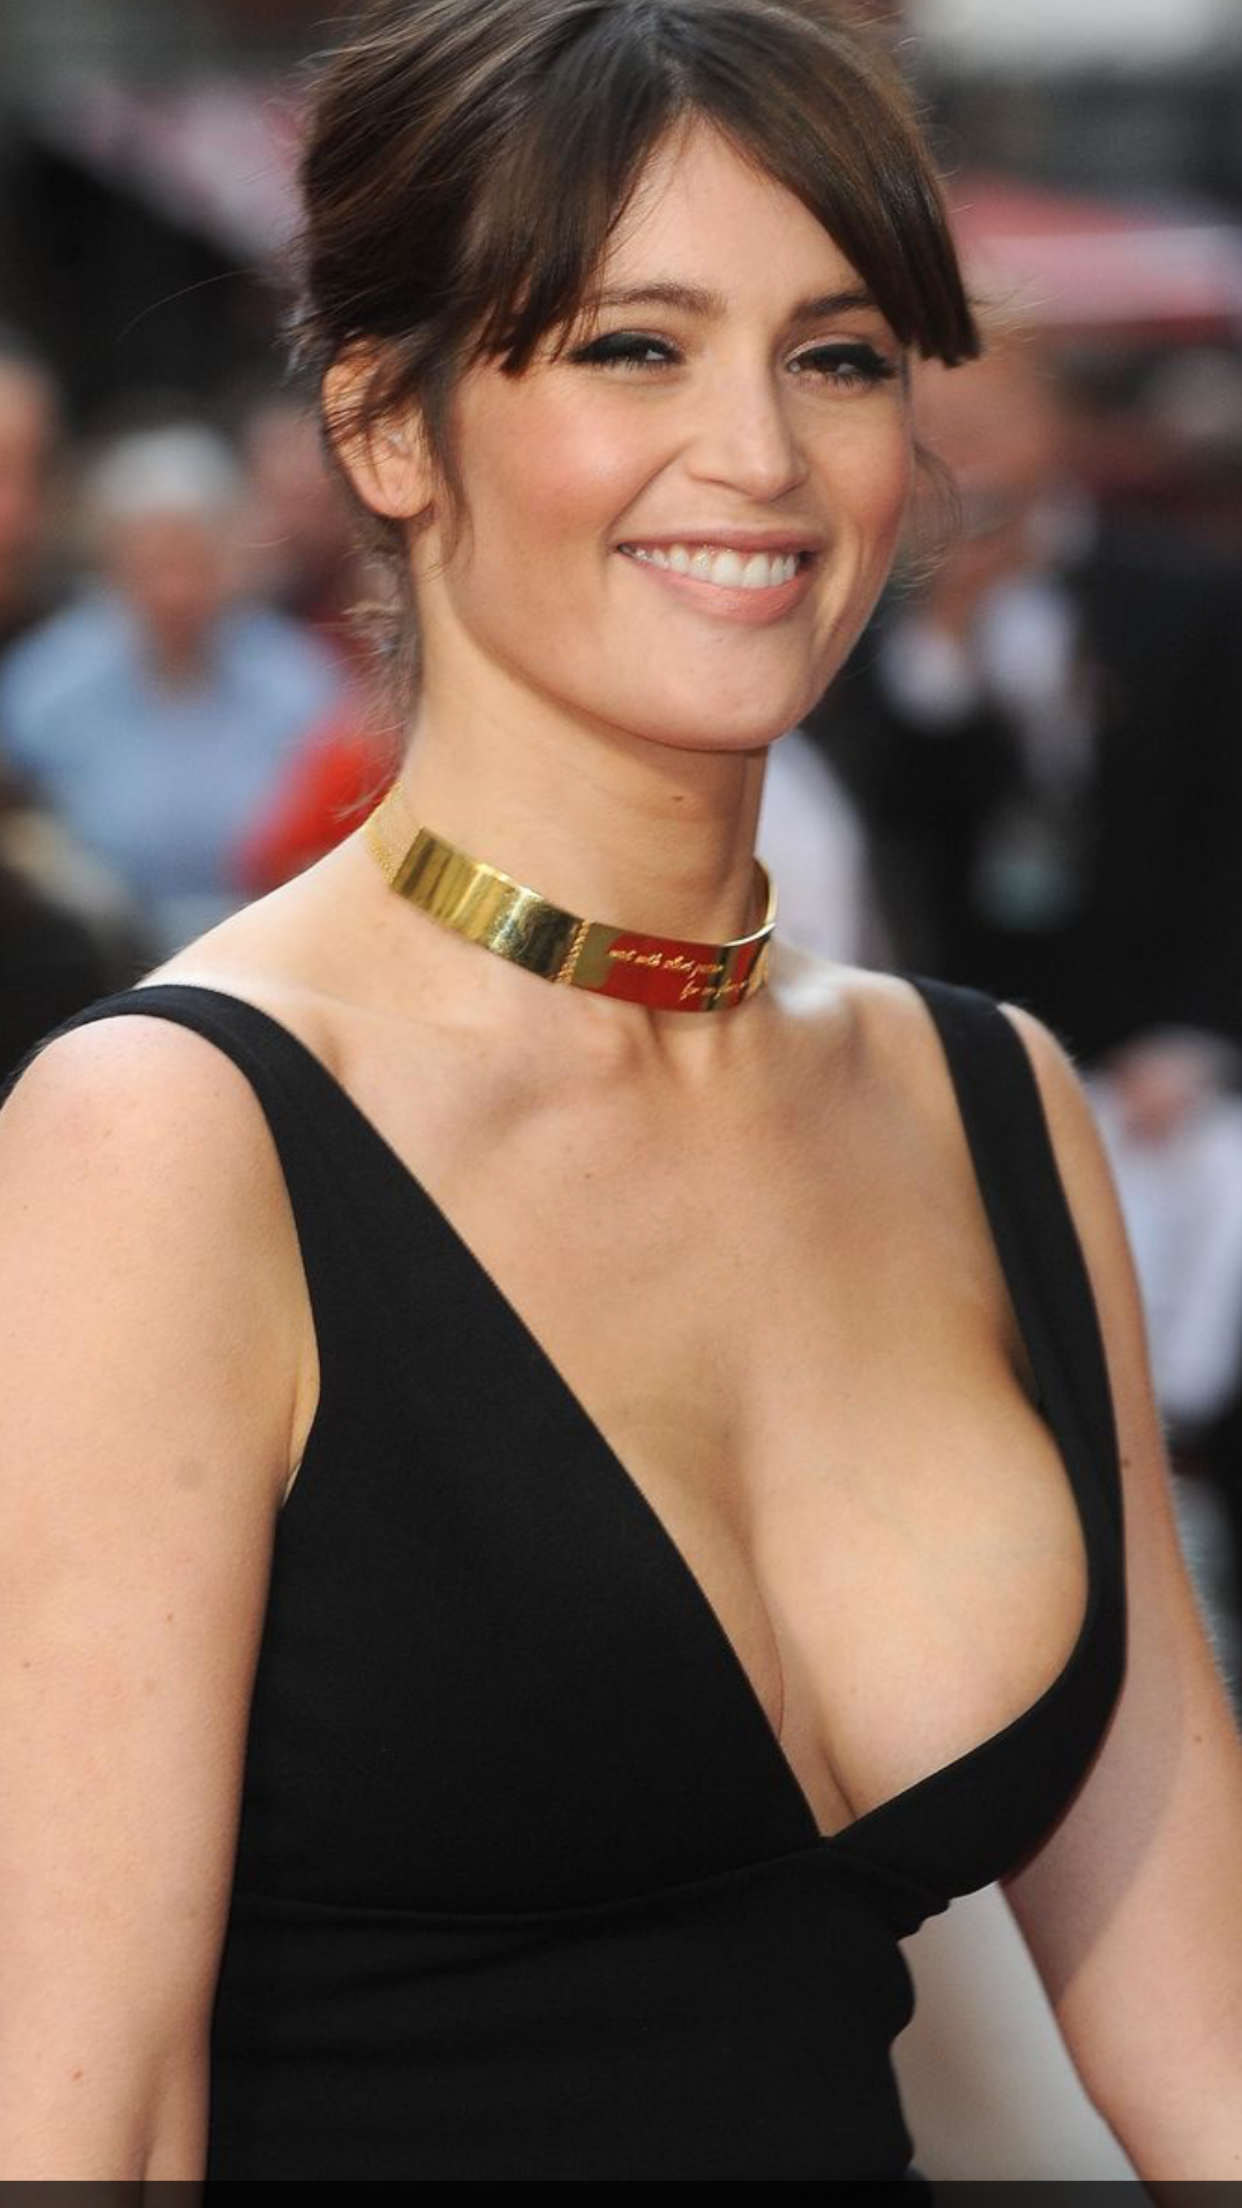 Gamma arterton hot galleries 94